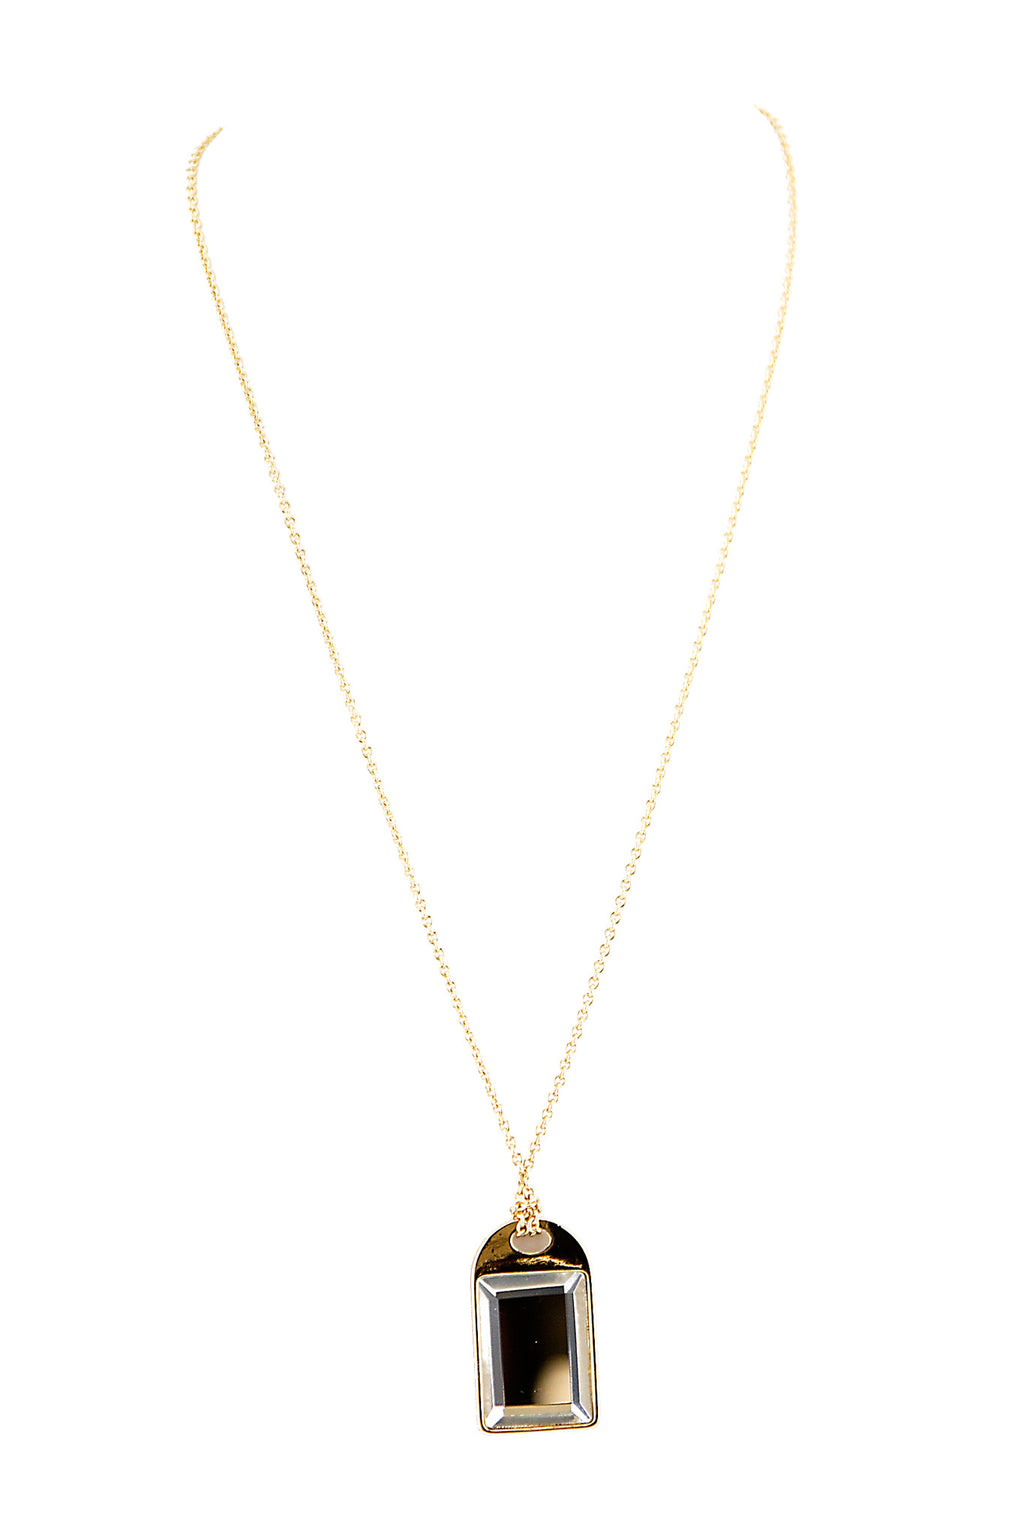 SQUARE CRYSTAL PENDANT NECKLACE - Haute & Rebellious